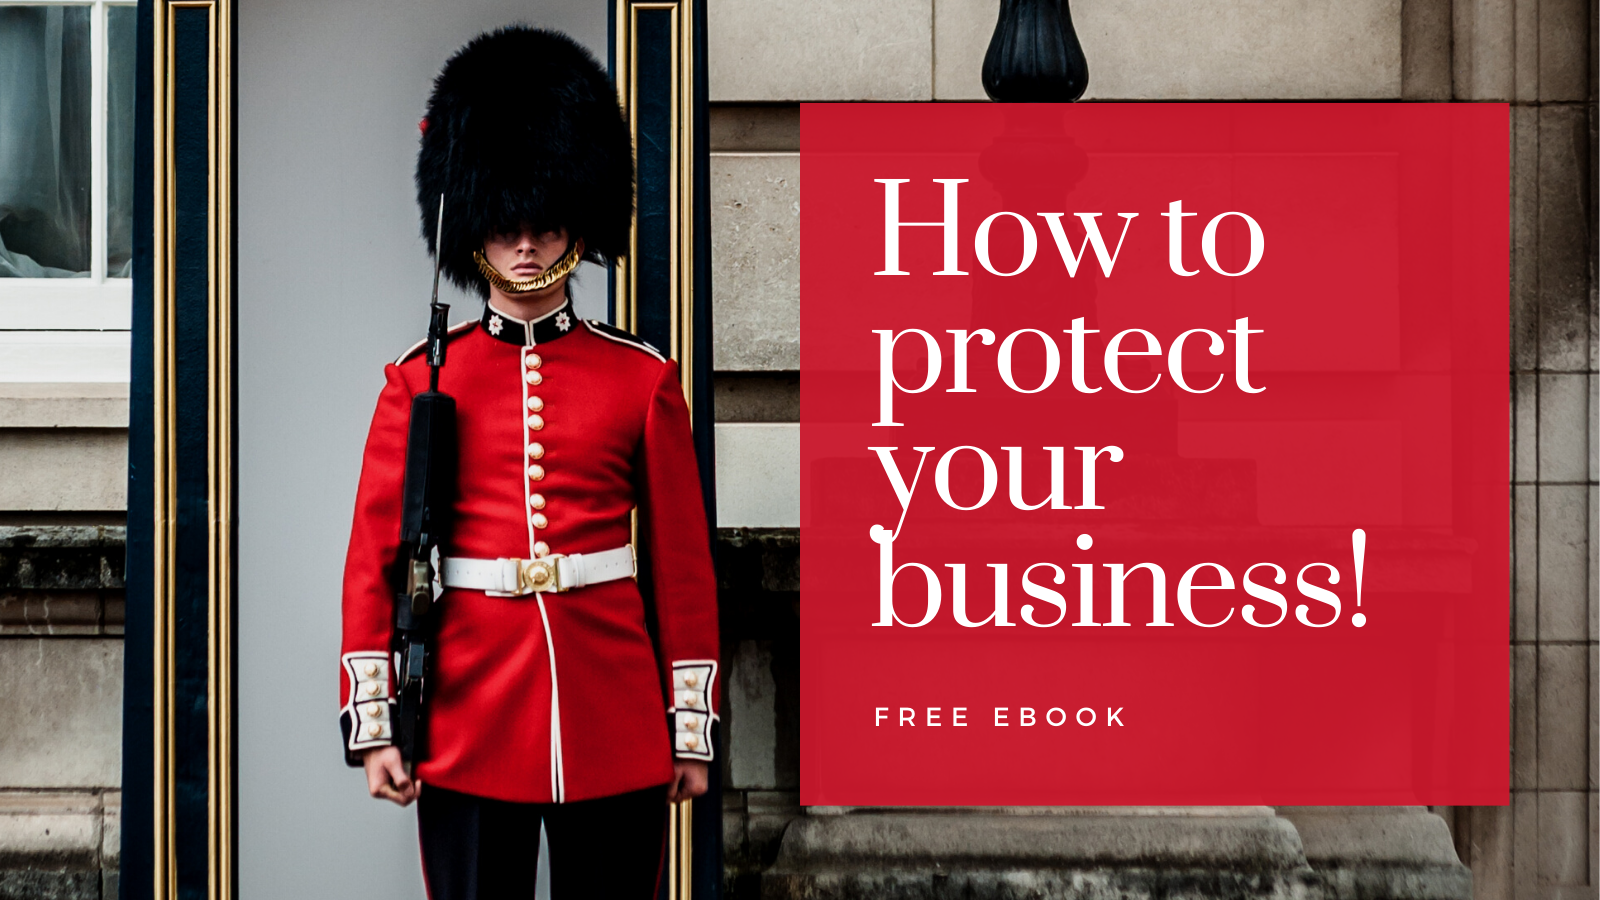 FREE EBook – To help local business owners learn about the massive cyber security risks that can arrive via email